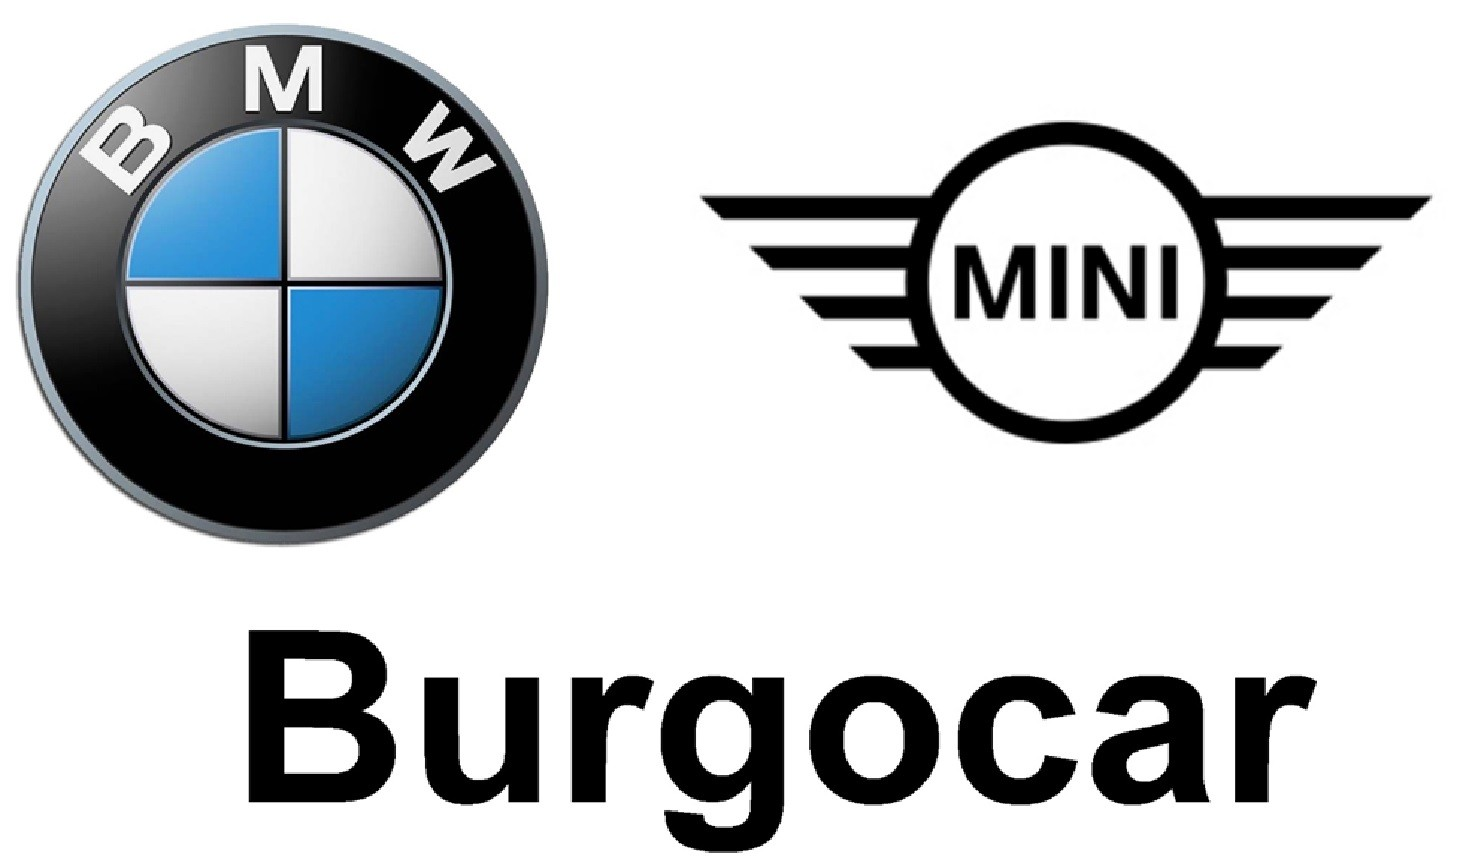 BMW MINI BURGOCAR